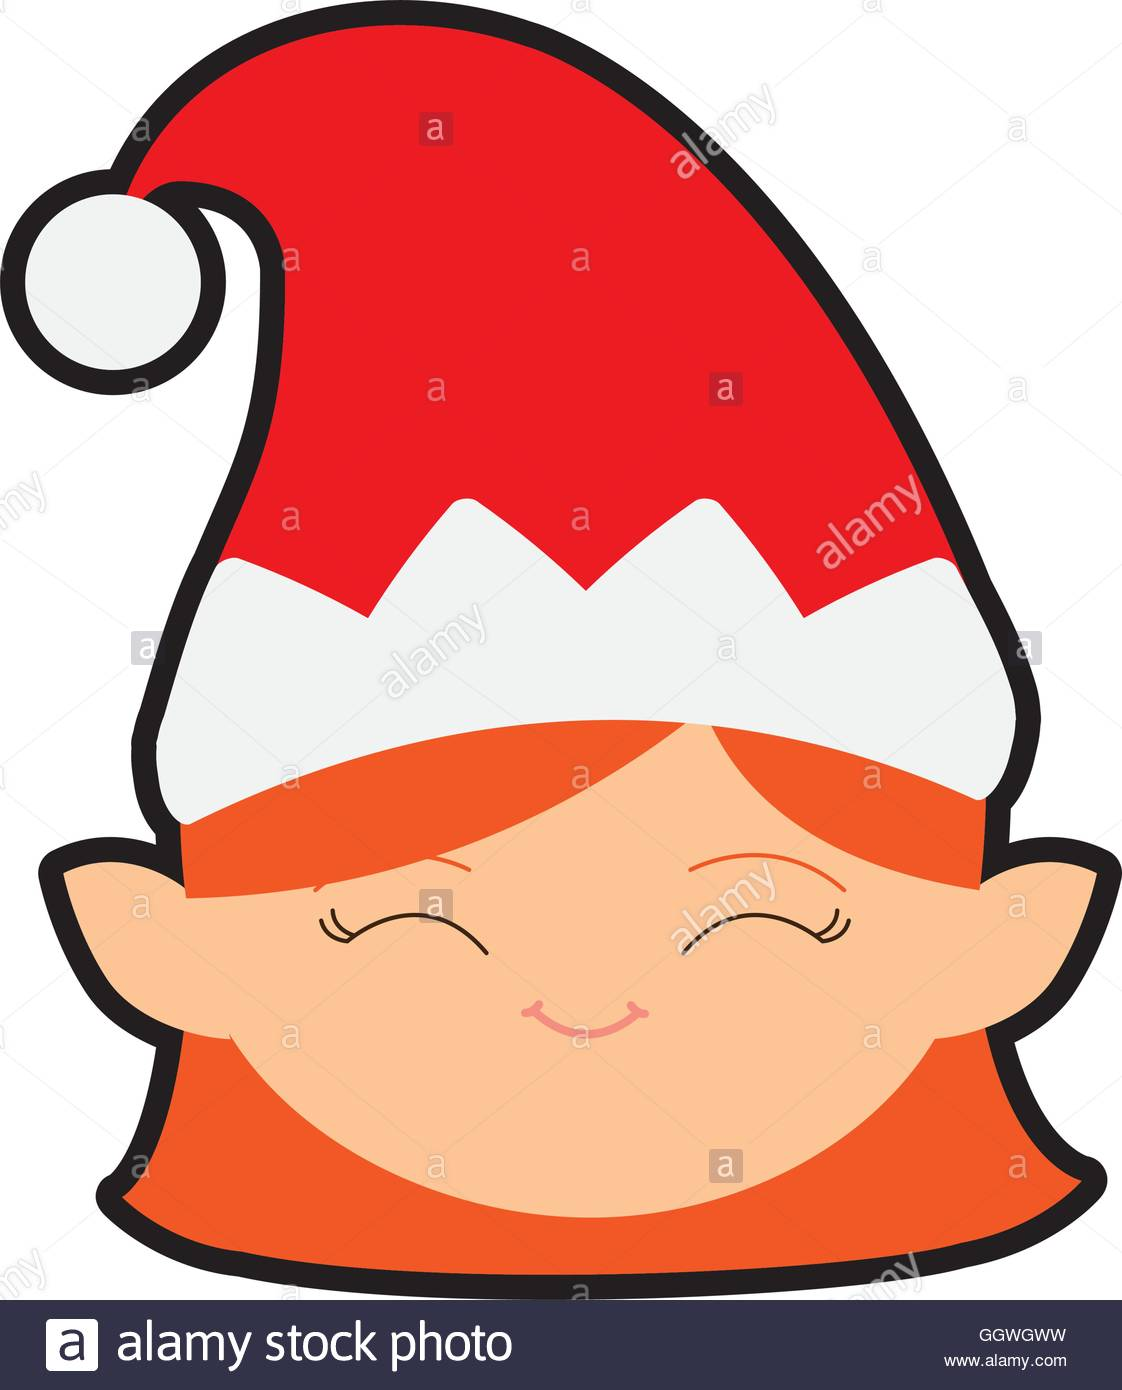 1122x1390 Elf Cartoon Merry Christmas Icon. Vector Graphic Stock Vector Art